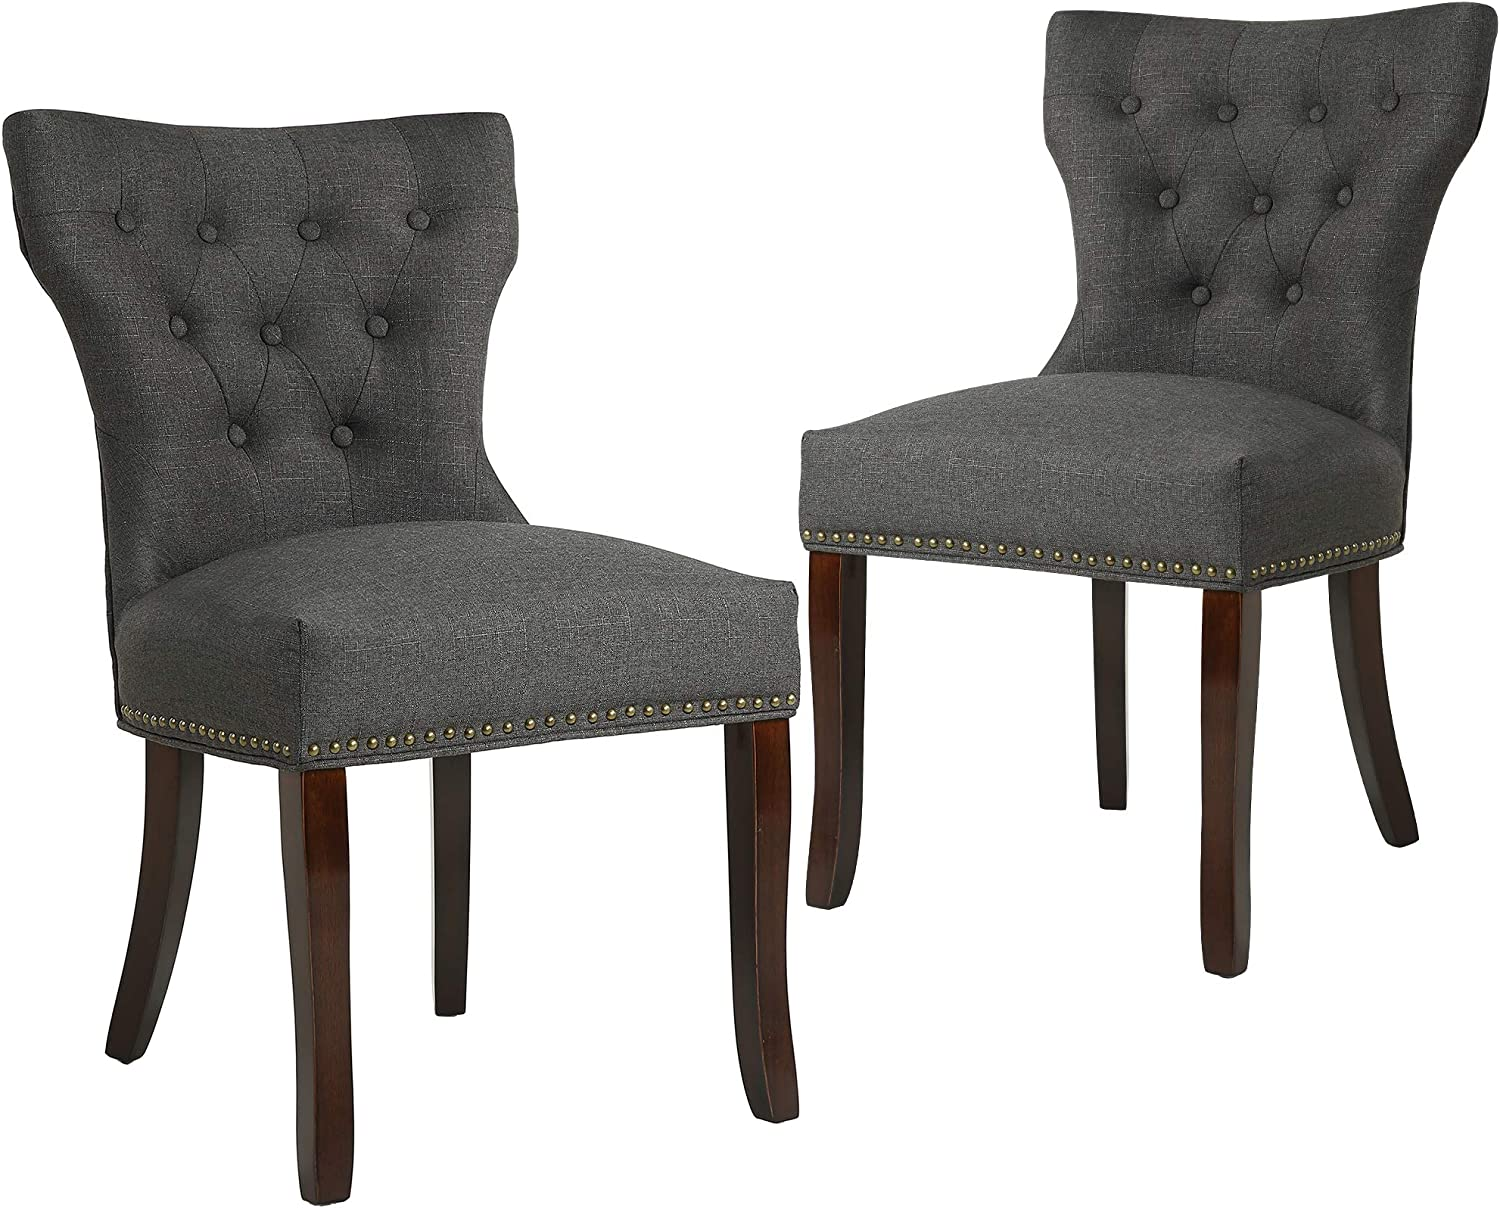 Set of 2 Dining Chairs Accent with Solid 最安値 Soft W 40%OFFの激安セール Fabric